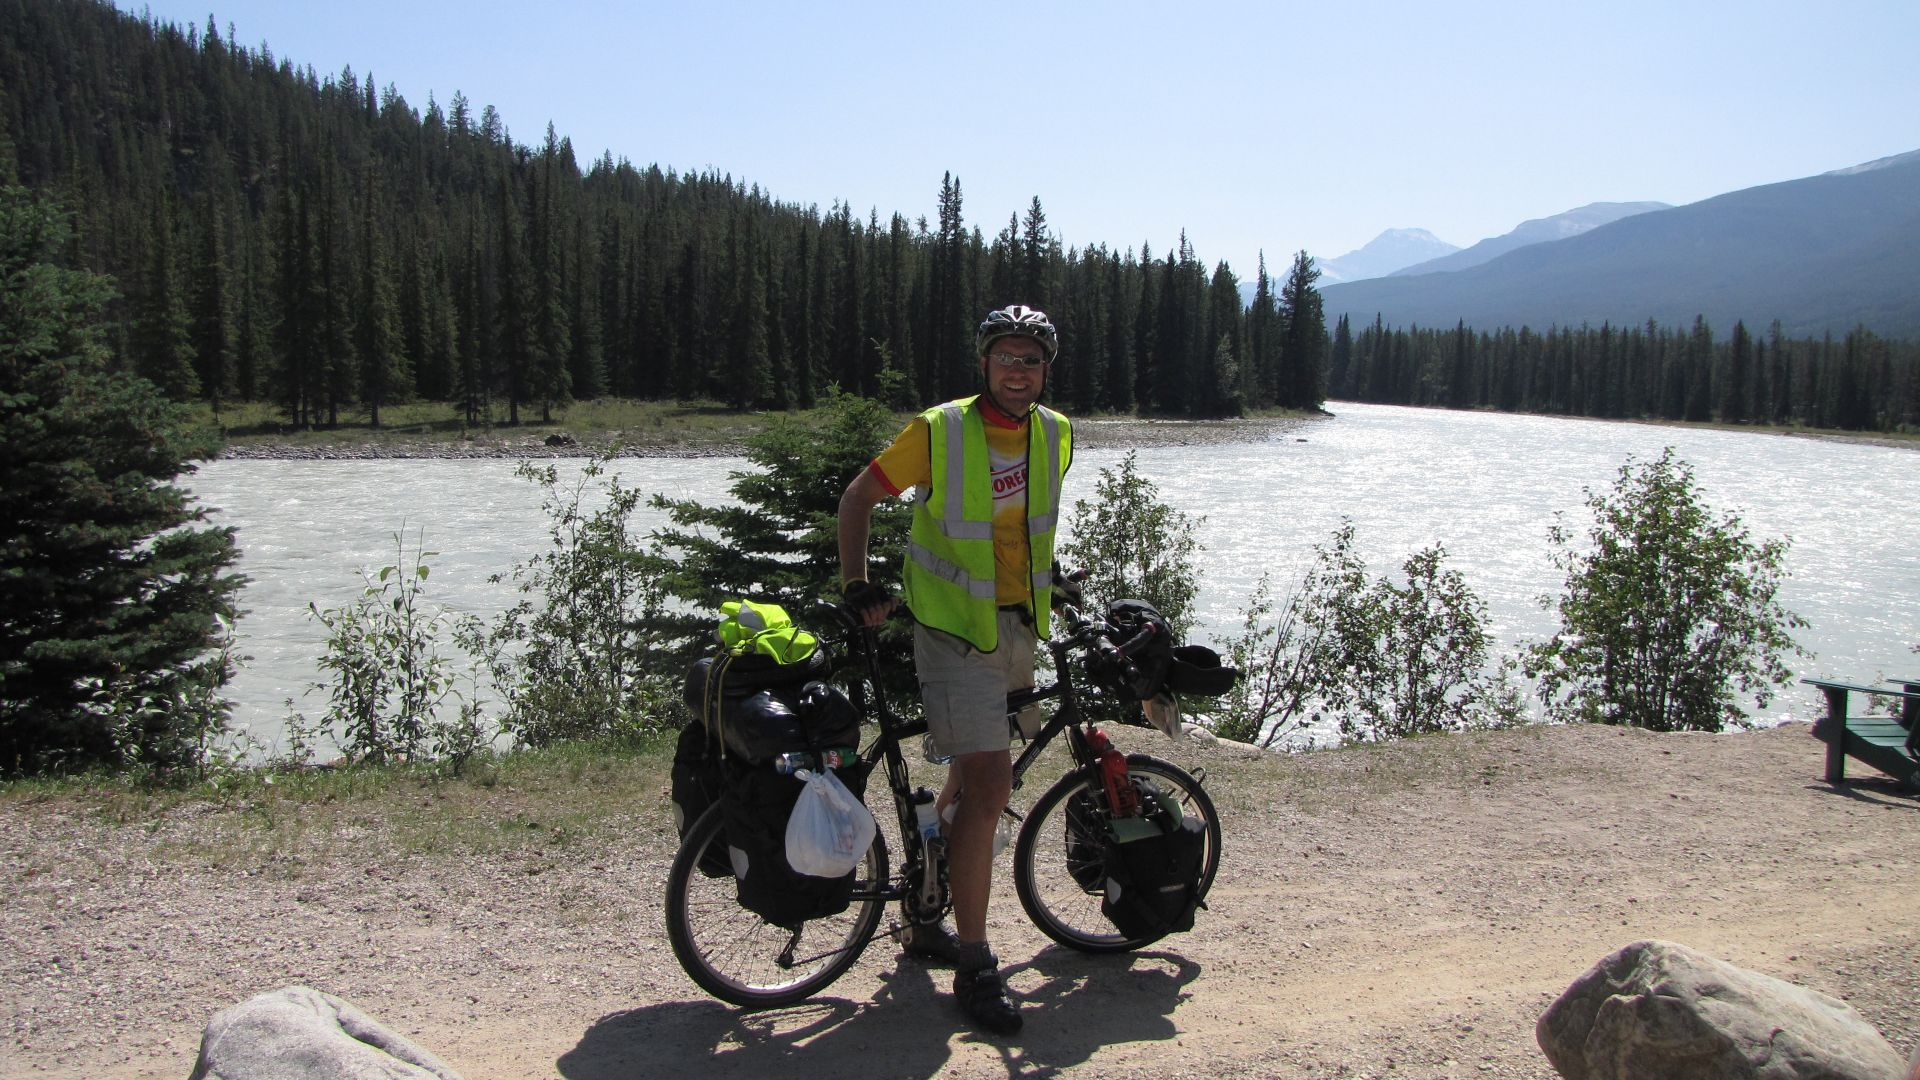 Nr Jasper, Alberta, Canada - After a few days off bike, I start off along the (astonishing) Icefield\'s Parkway toward Lake Louise / Banff